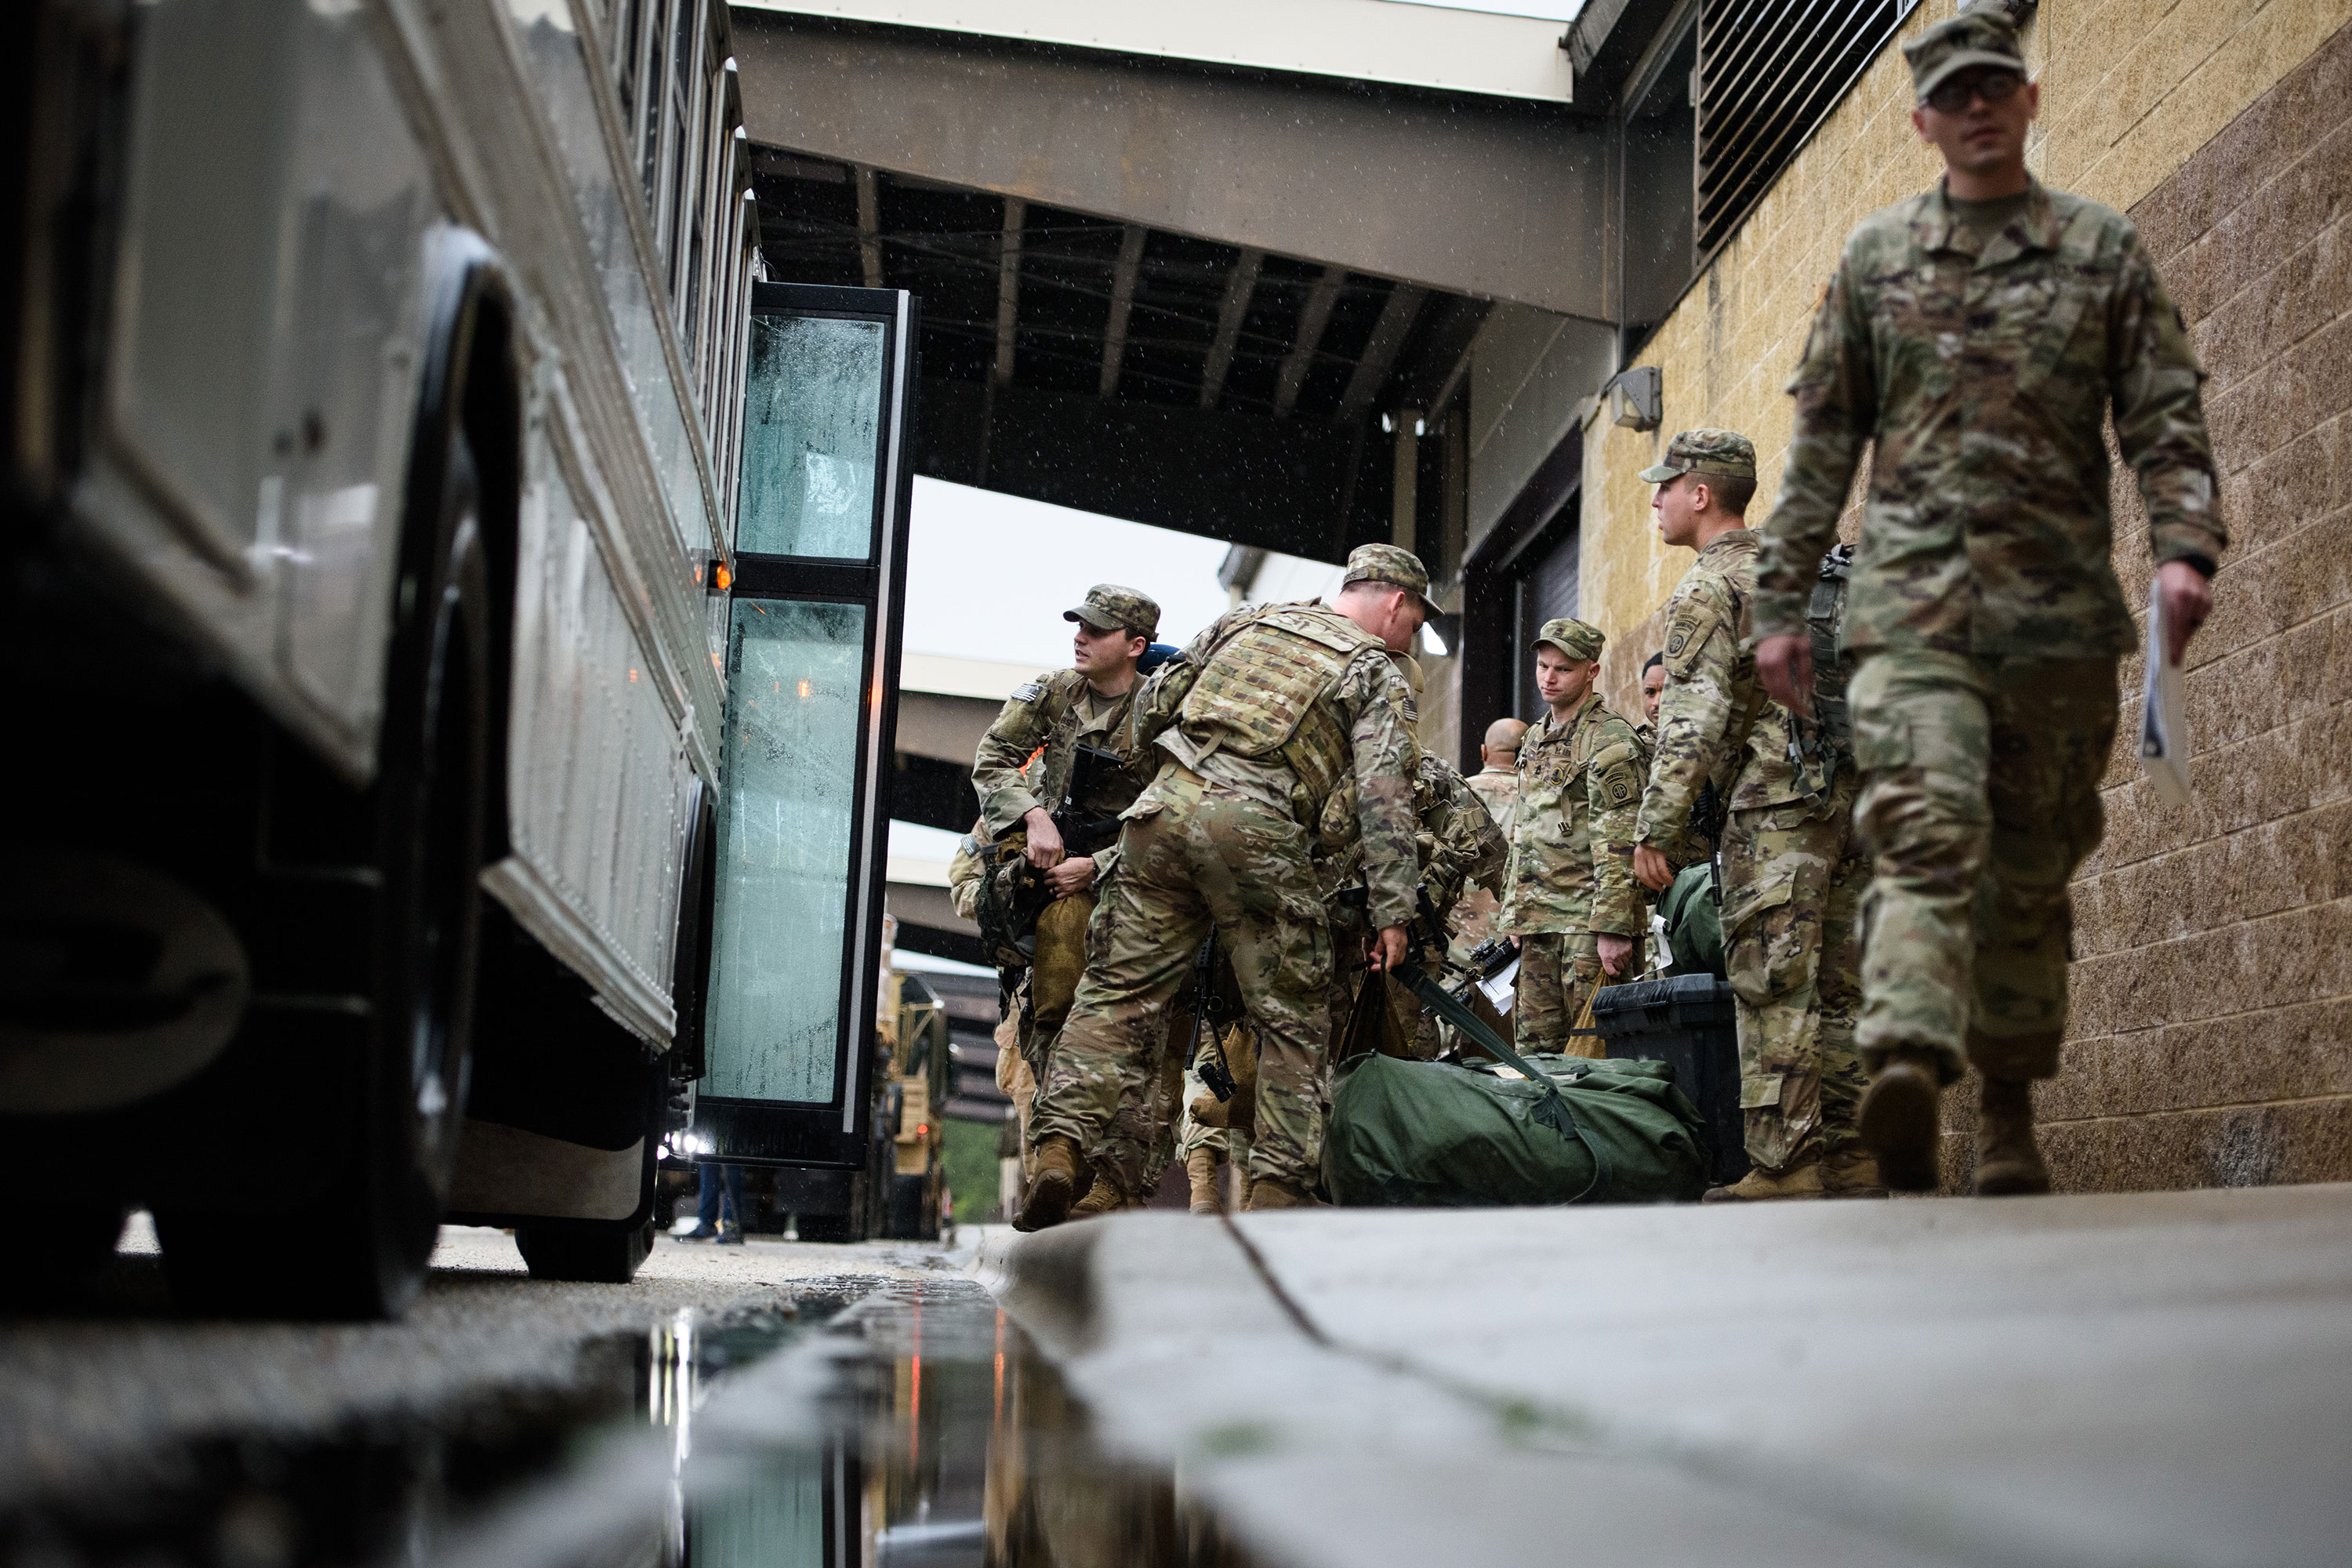 Soldiers from the 82d Airborne Division arrive at Fort Bragg, North Carolina, on January 4.